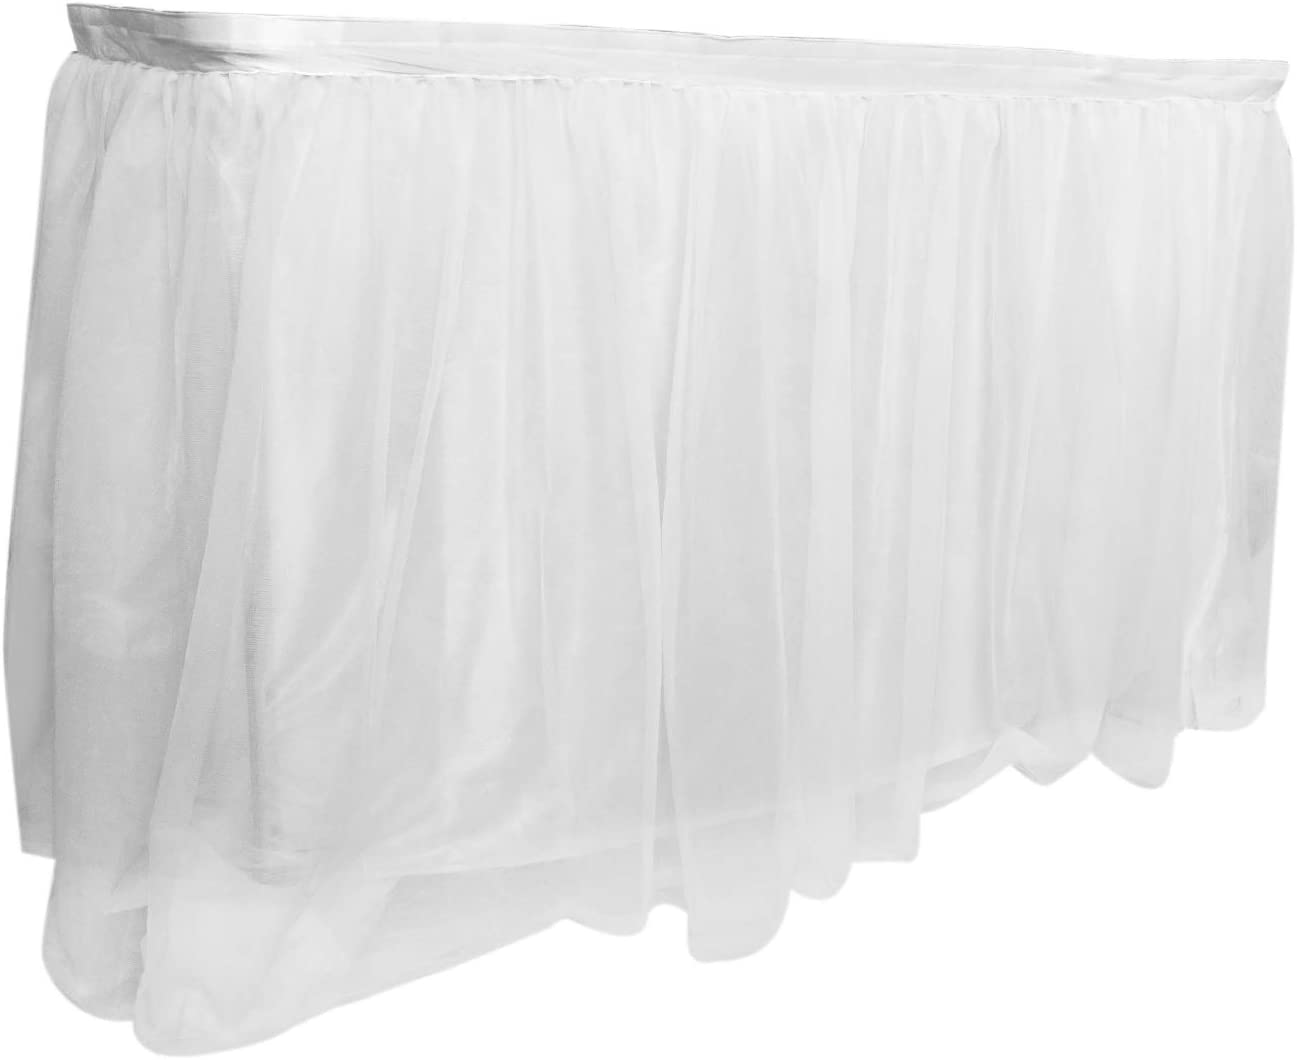 Royal Imports 9 ft White Tulle Table Skirt, Tulling Tablecloth for Wedding, Birthday Party, Bridal, Baby Shower, Home Decoration Skirting - Rectangle